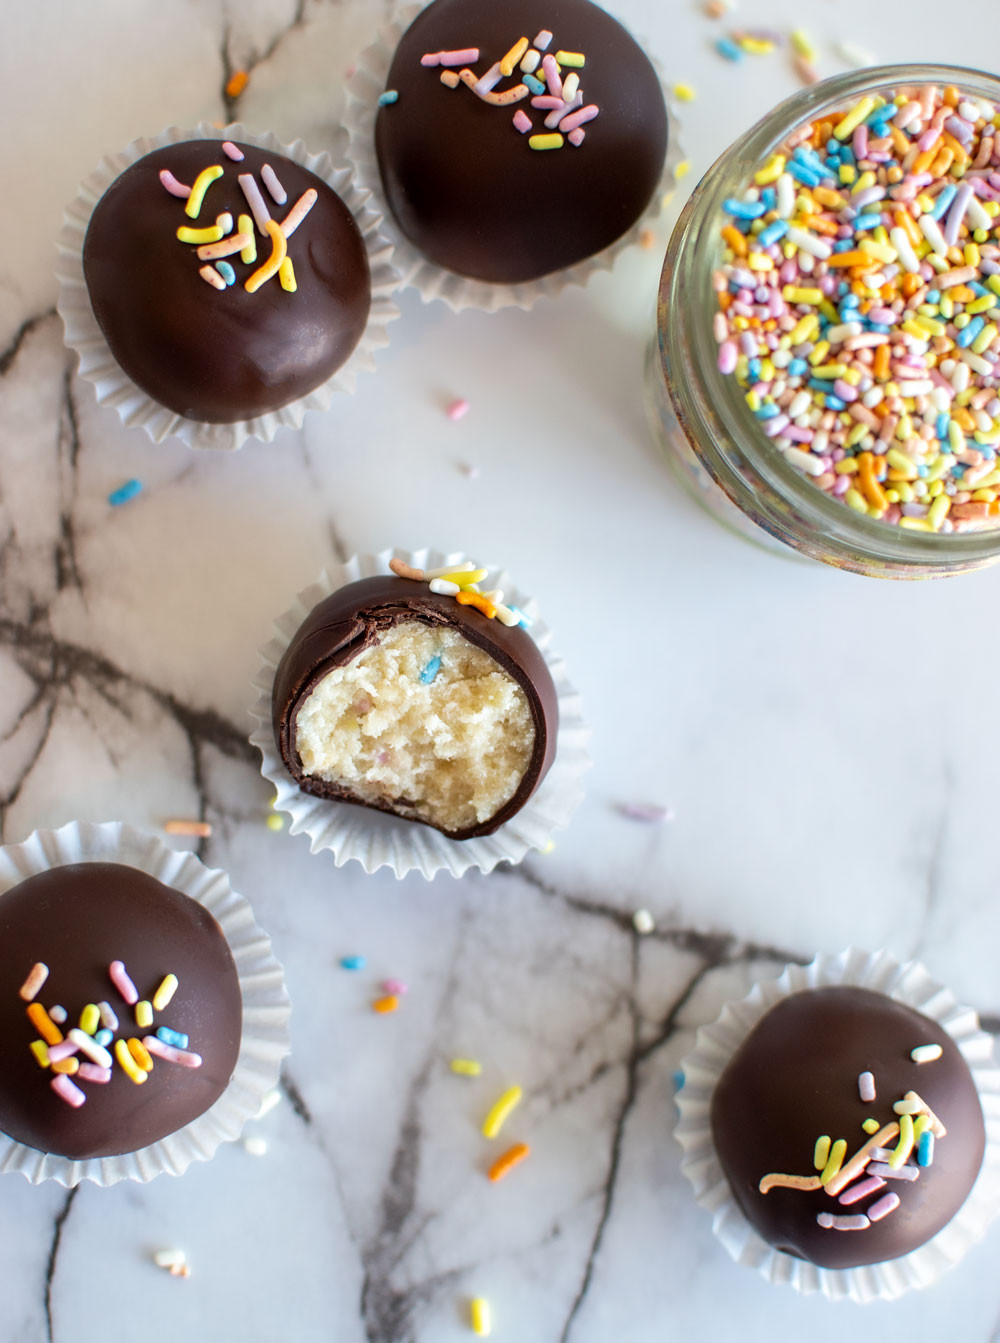 Easy Dark Chocolate Funfetti Cake Ball recipe for New Year's! In this post I'll show you how to make cake balls. These little magical dessert bites are so good, you'll want to bake them all the time! #cakeballs #organic #funfetti #darkchocolate #cake #newyears